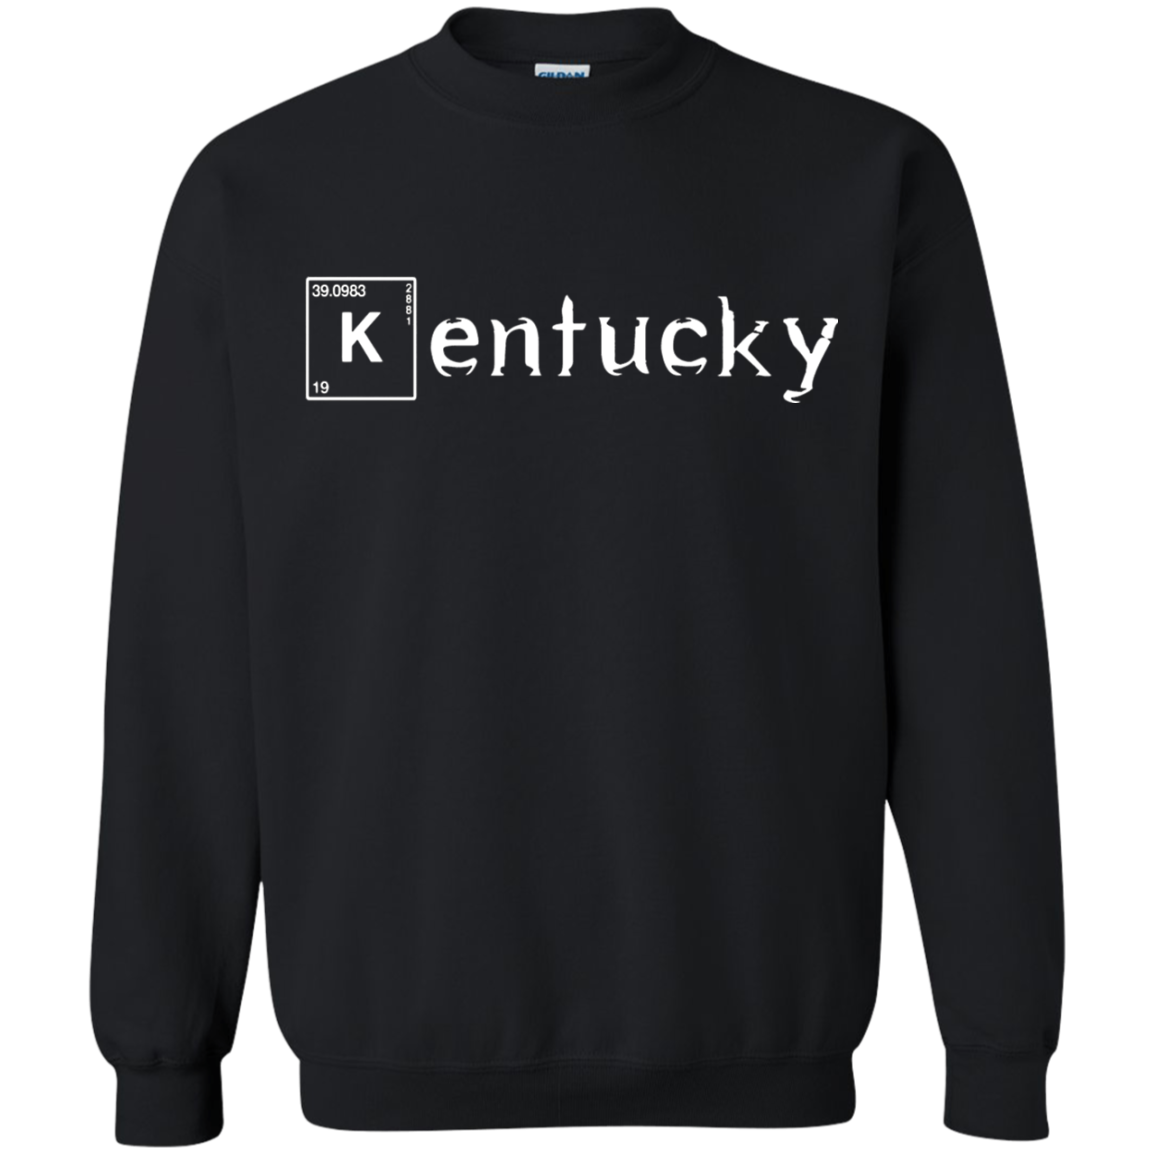 Breaking Kentucky T Shirt I Gift Shirt for Men and Women